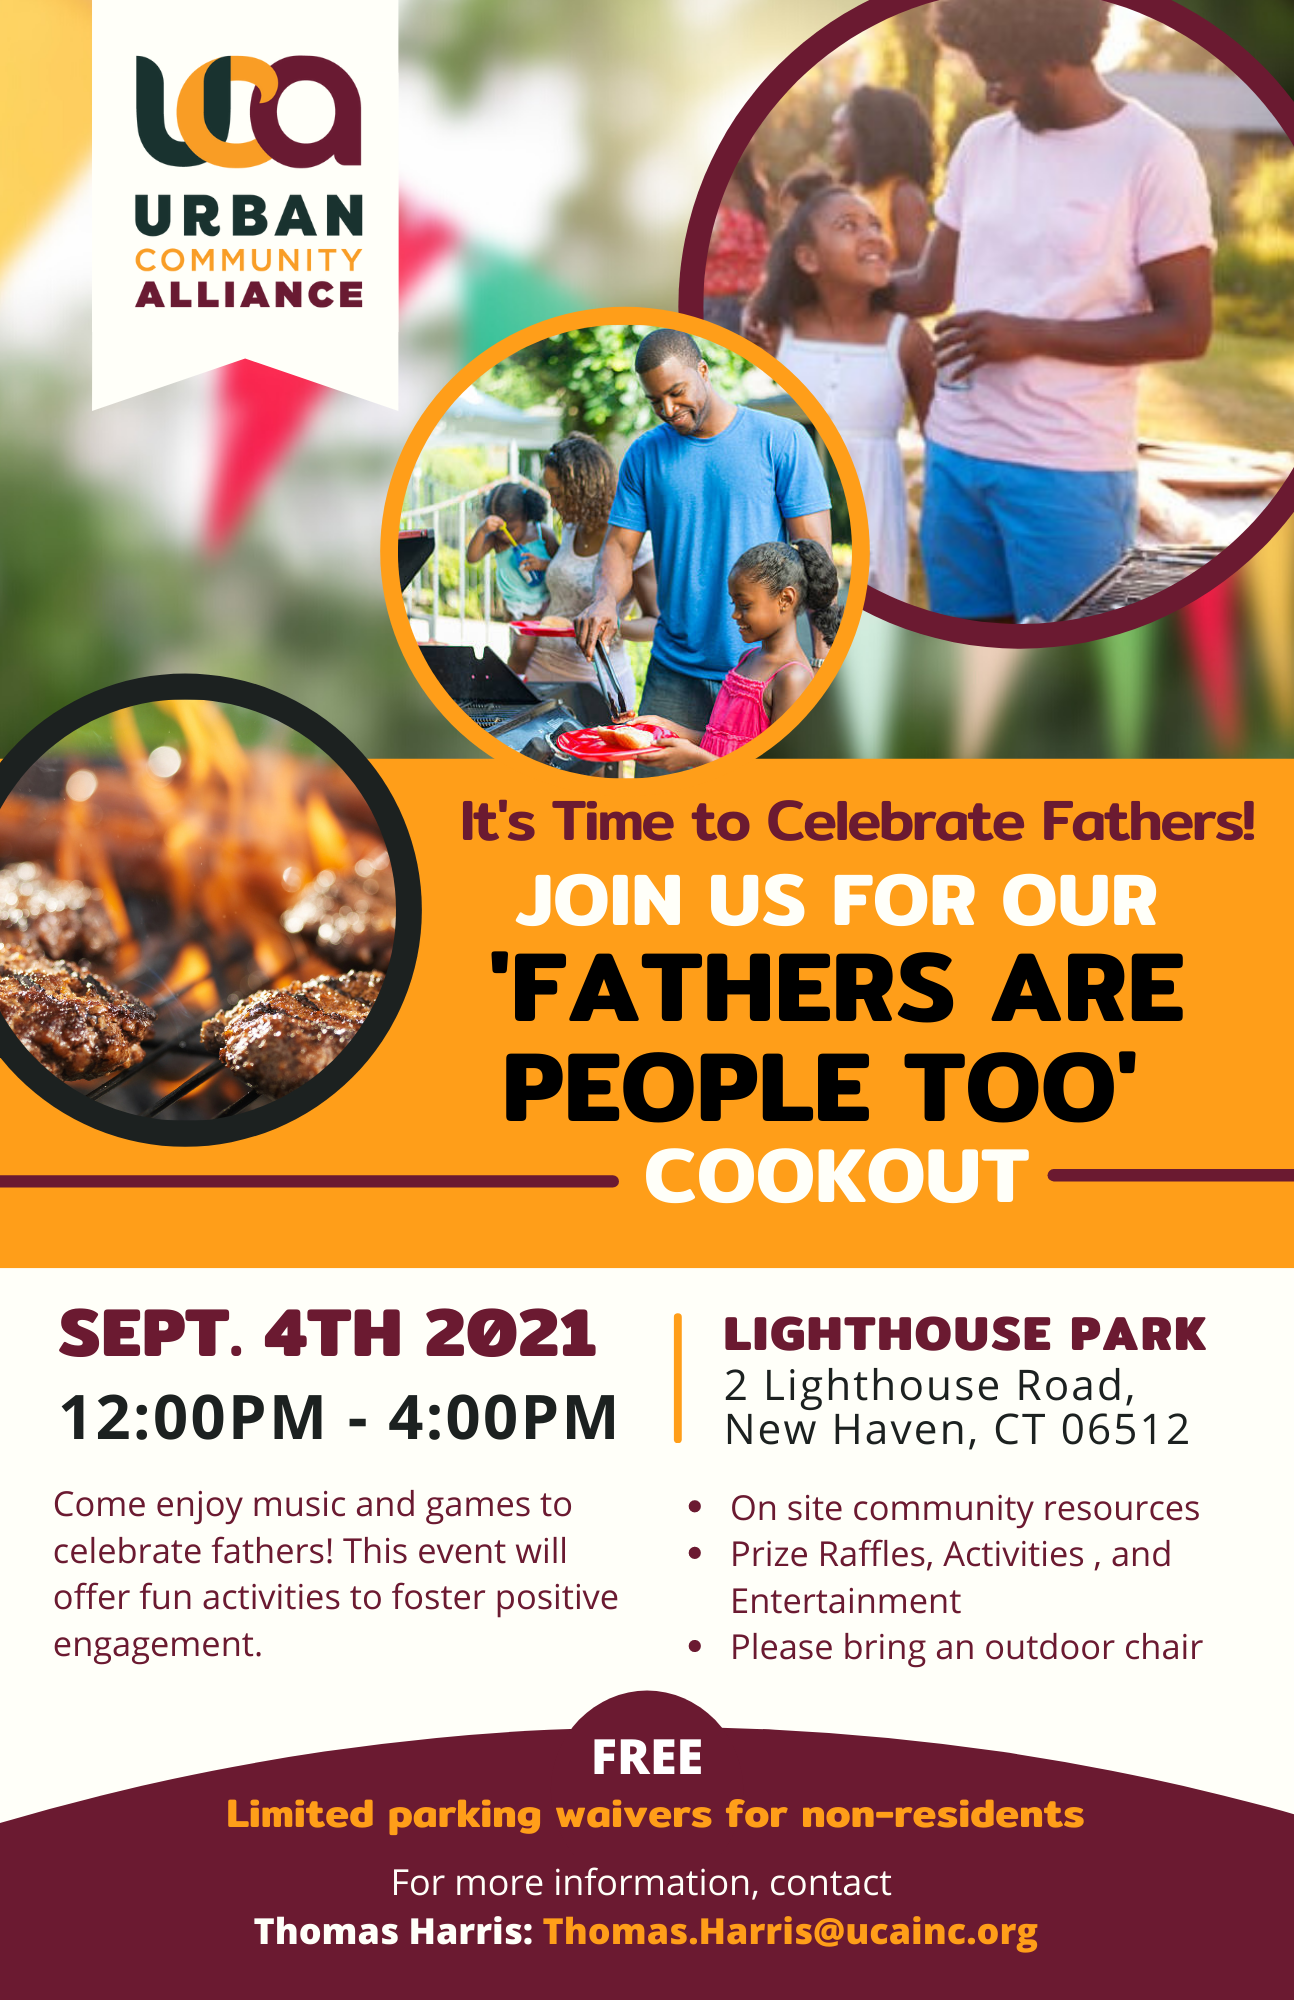 Fathers are People Too Cookout Event